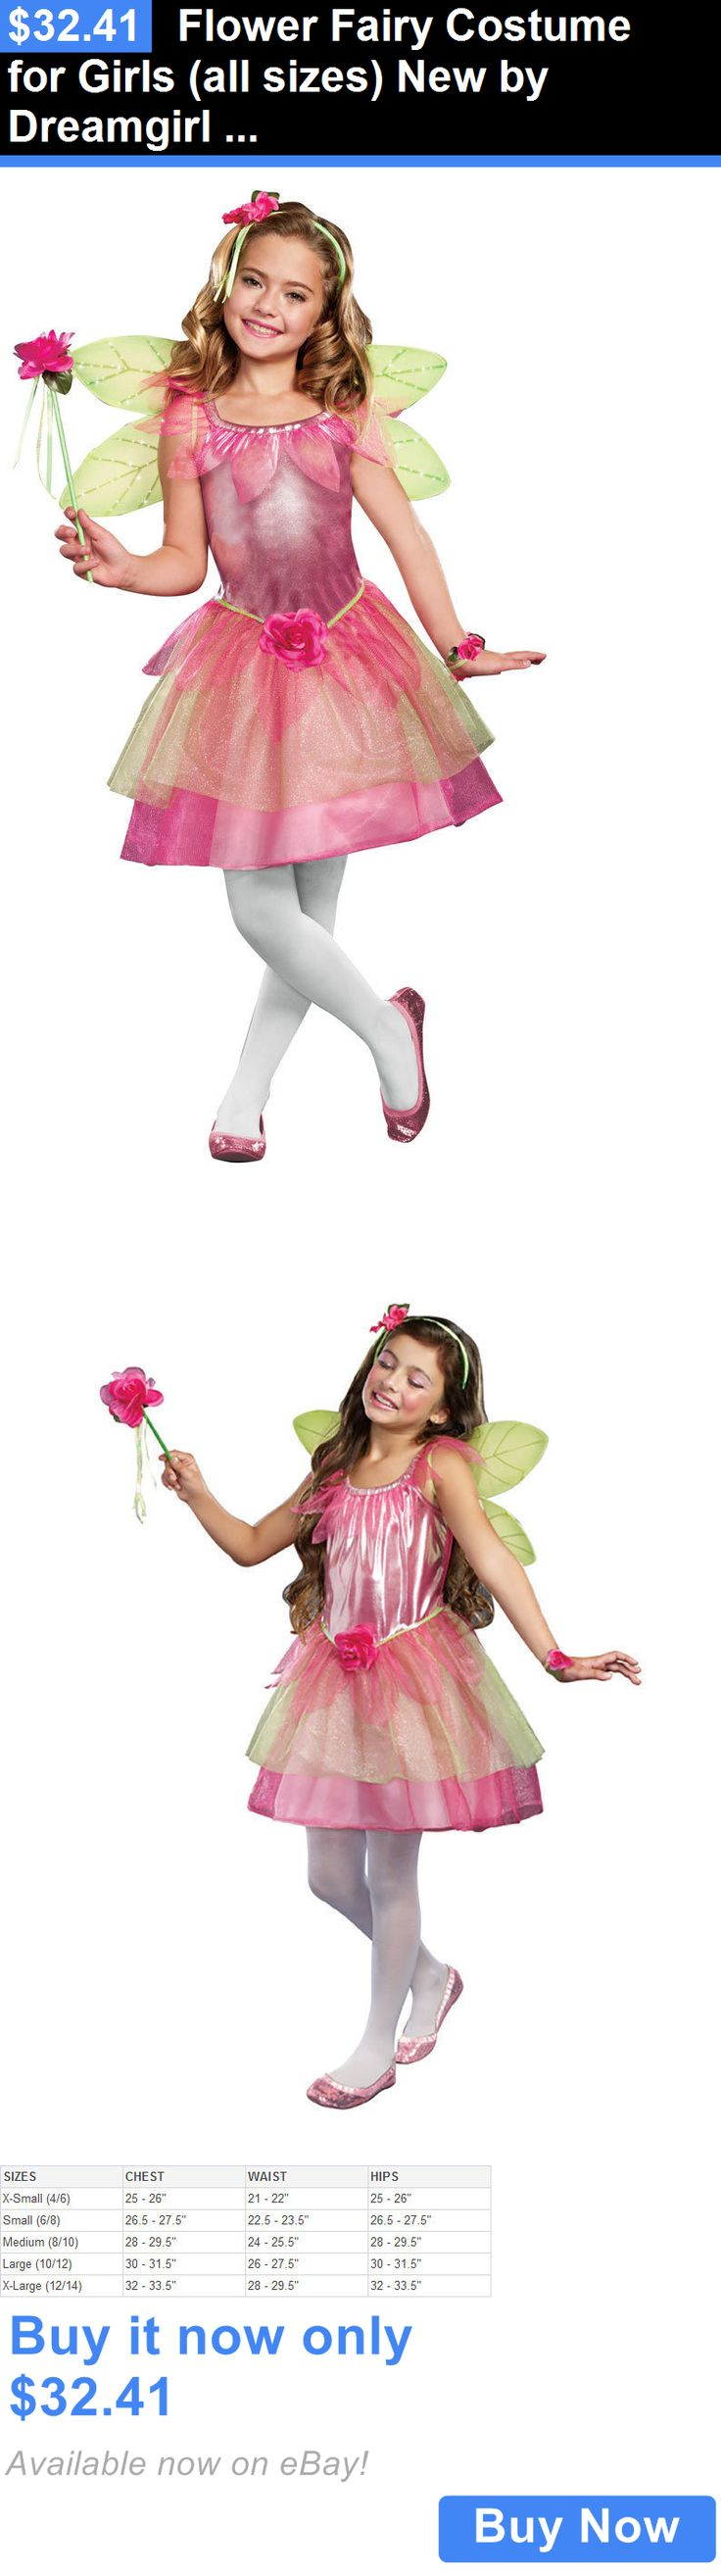 Kids Costumes: Flower Fairy Costume For Girls (All Sizes) New By Dreamgirl 9564 BUY IT NOW ONLY: $32.41